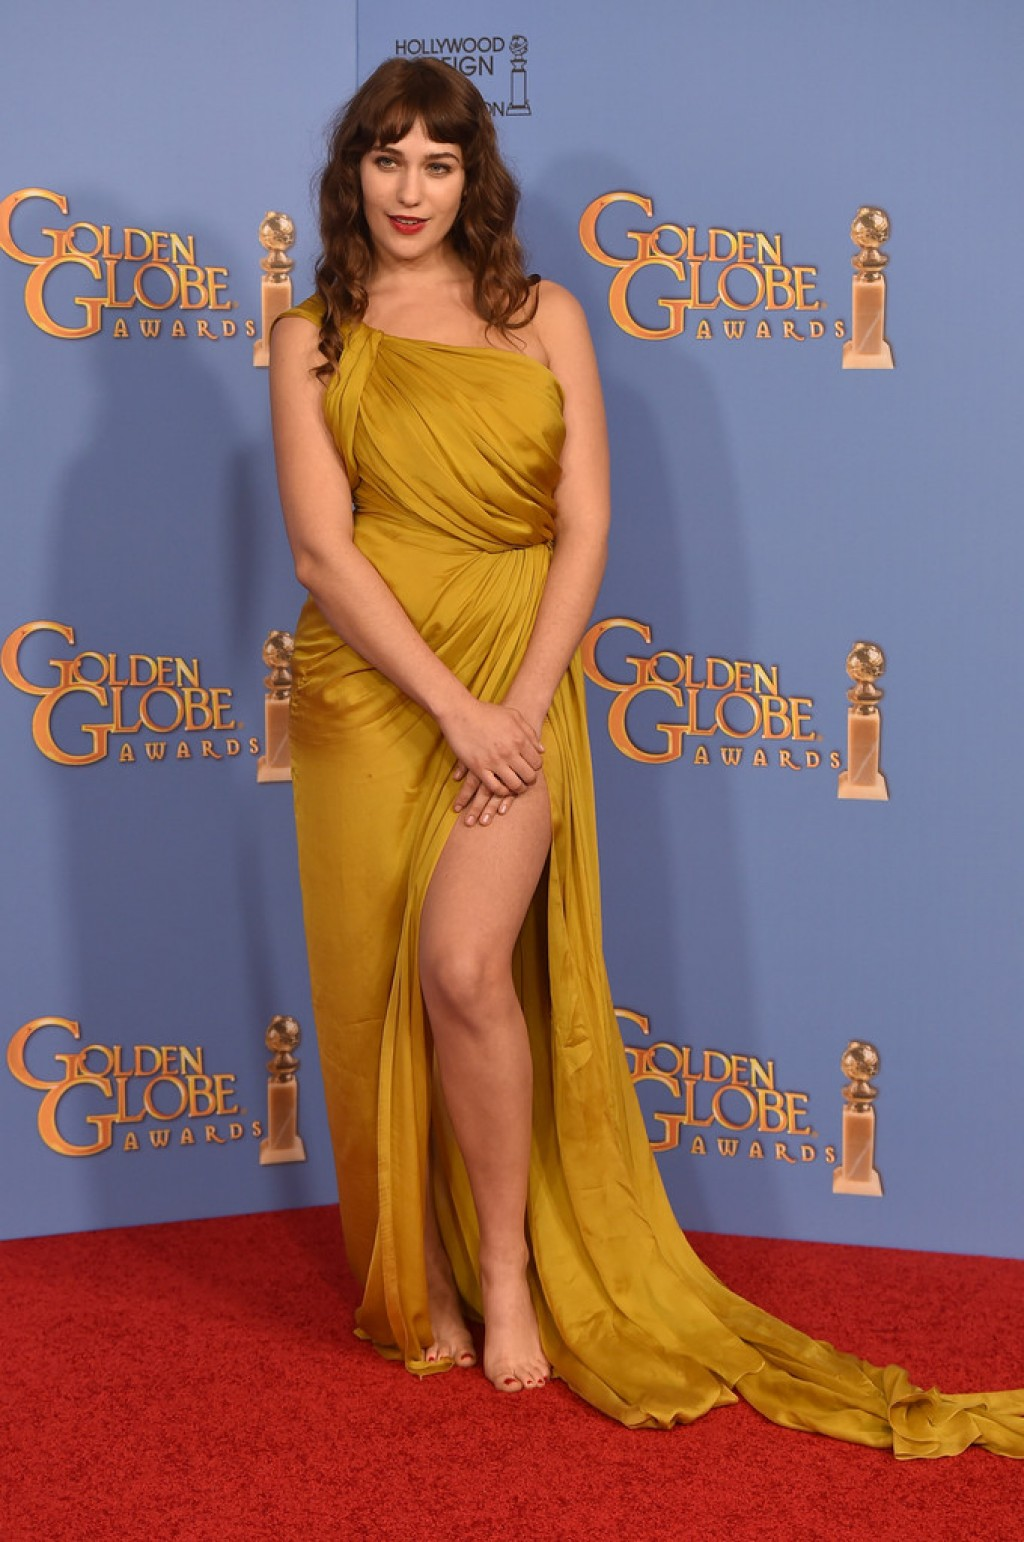 Lola-Kirke-in-Monique-Lhuillier-2016-Golden-Globes-1024x1542